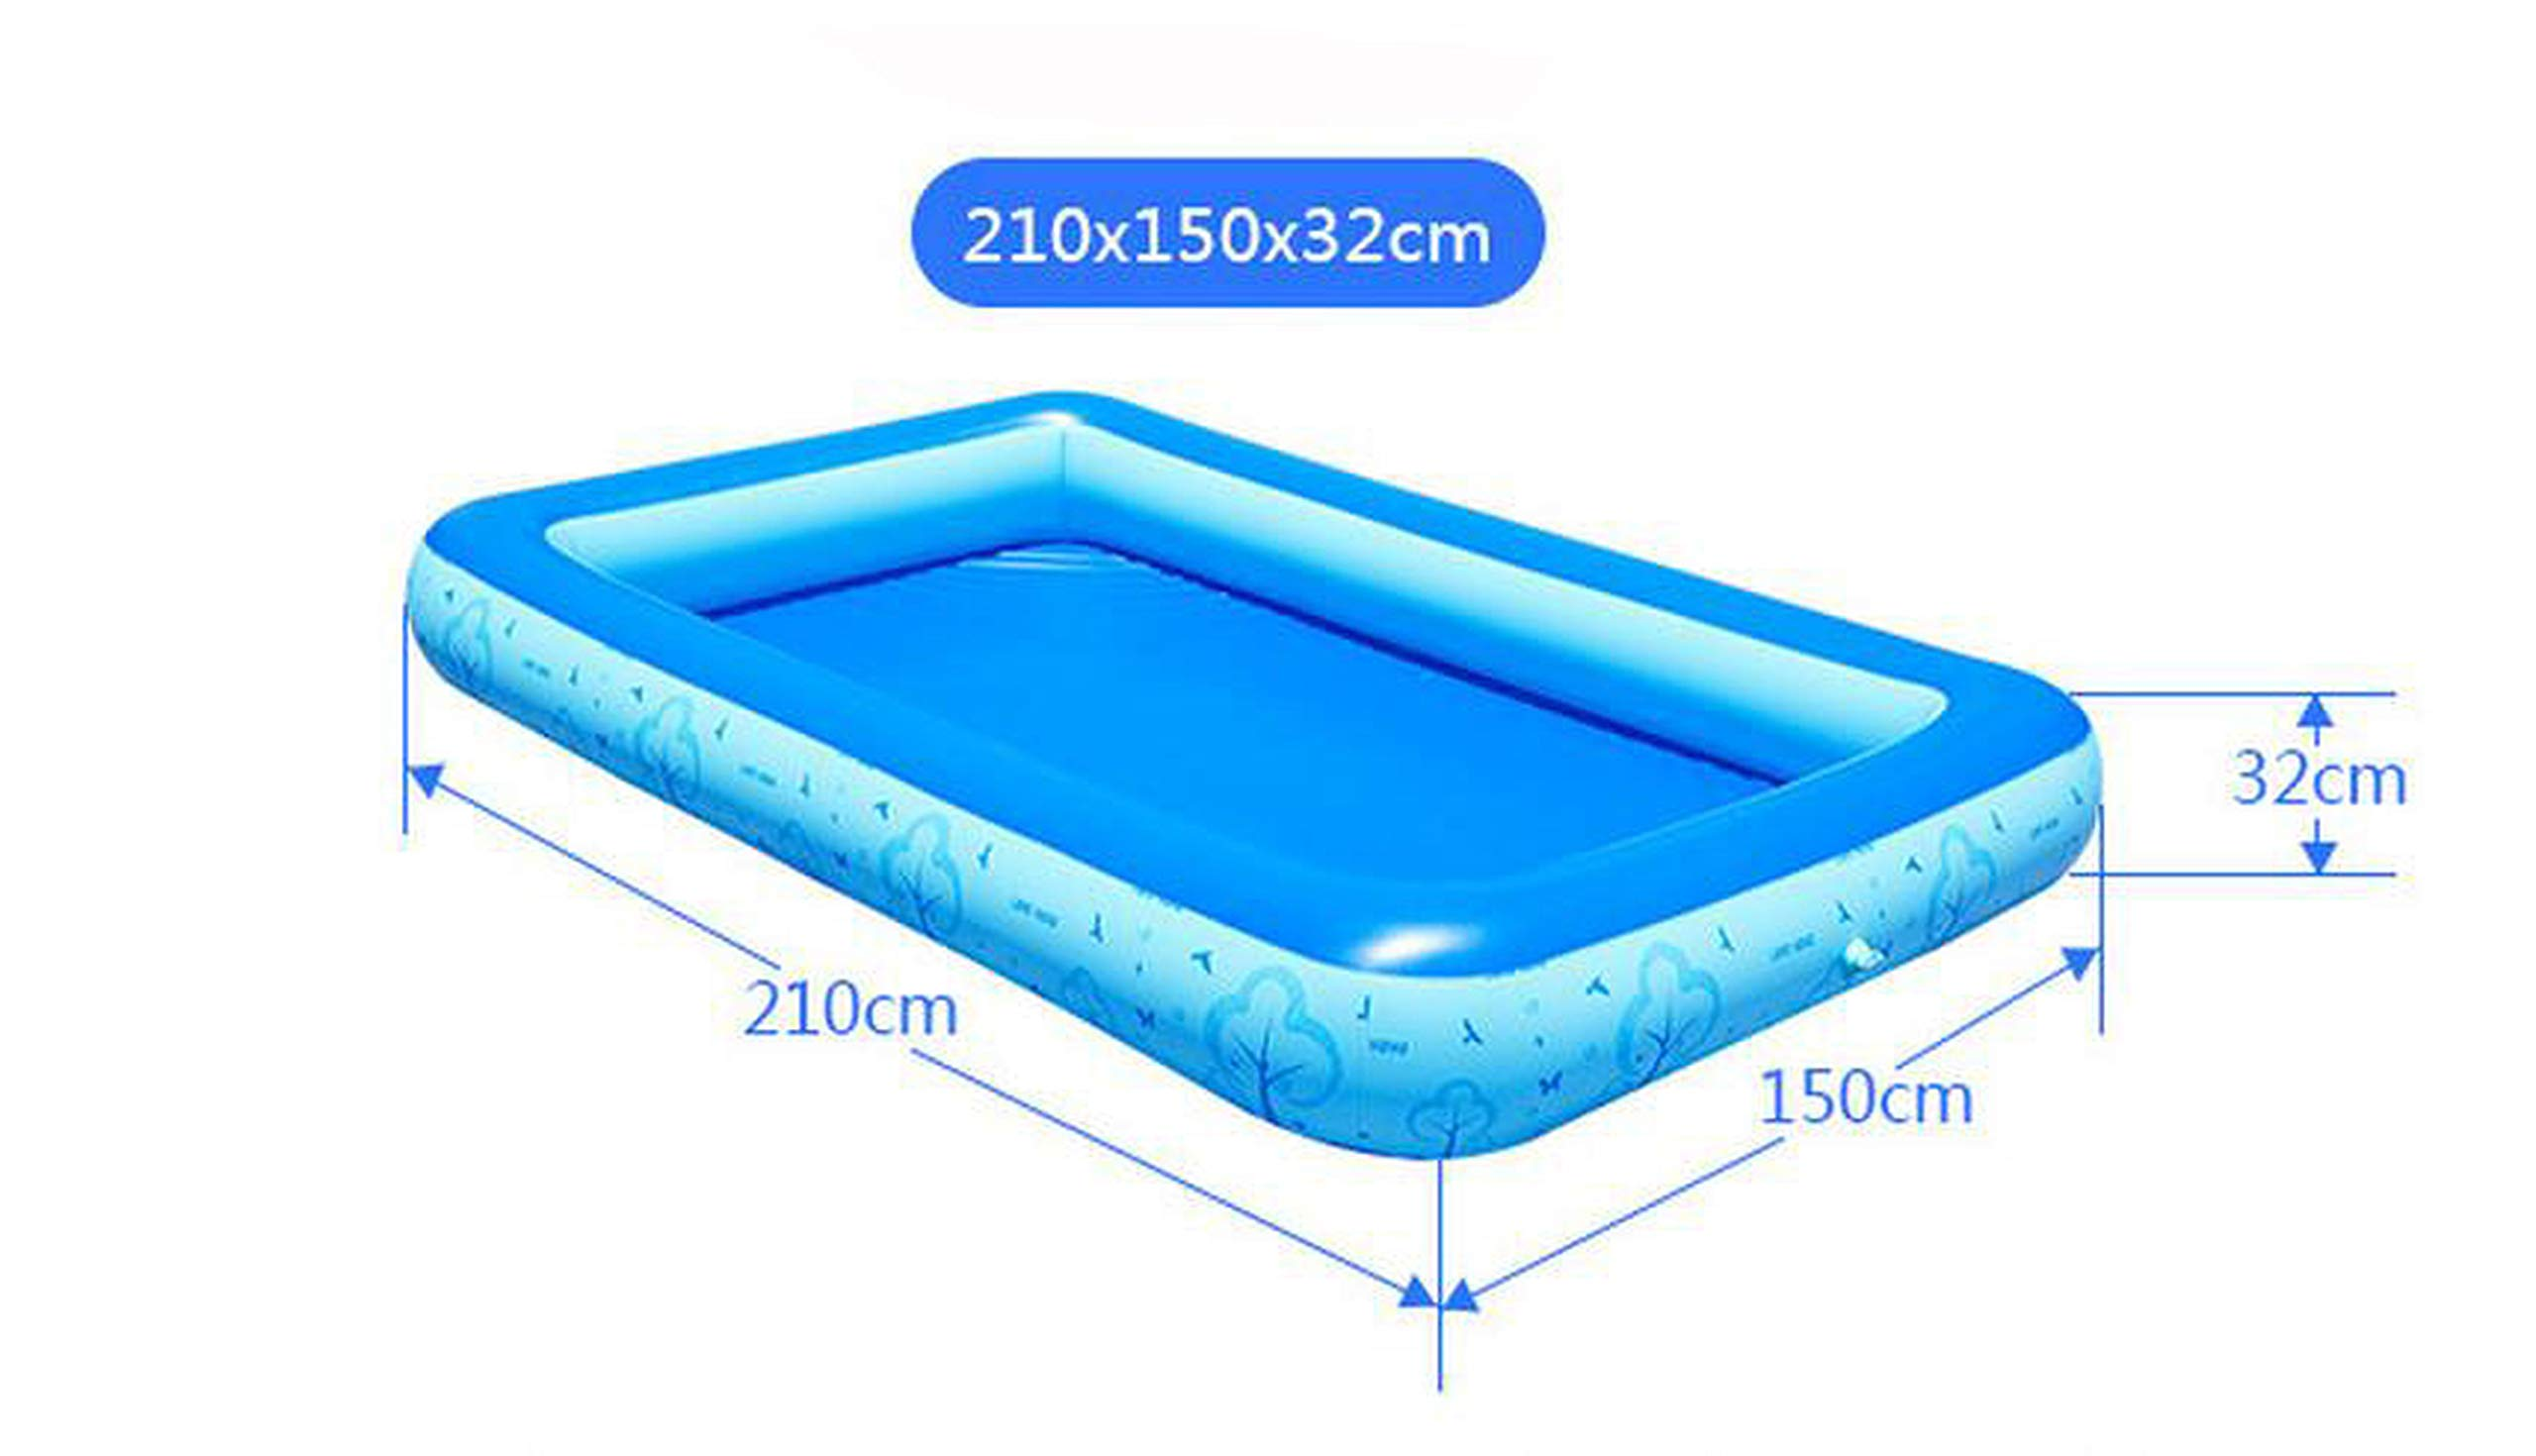 QIUHUAXIANG One Layer Inflatable Swimming Pool Extra Large Beach Pool for Adults and Children Summer Sand Ball Fun,The Tree